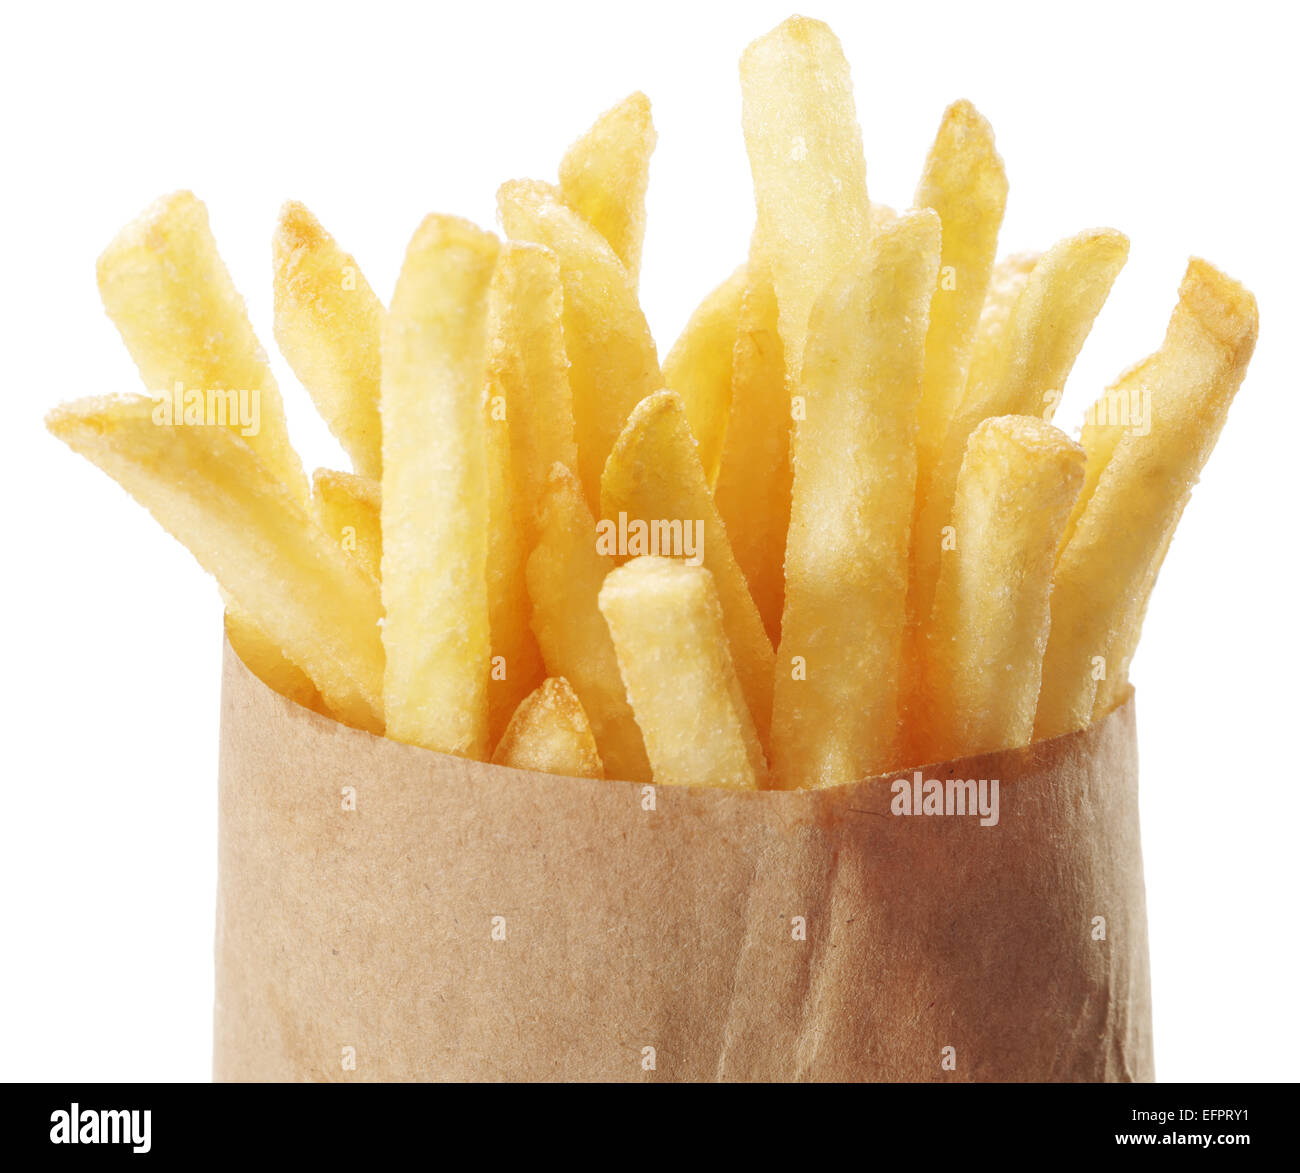 Potato - French fries on a white background. Takeaway food. - Stock Image